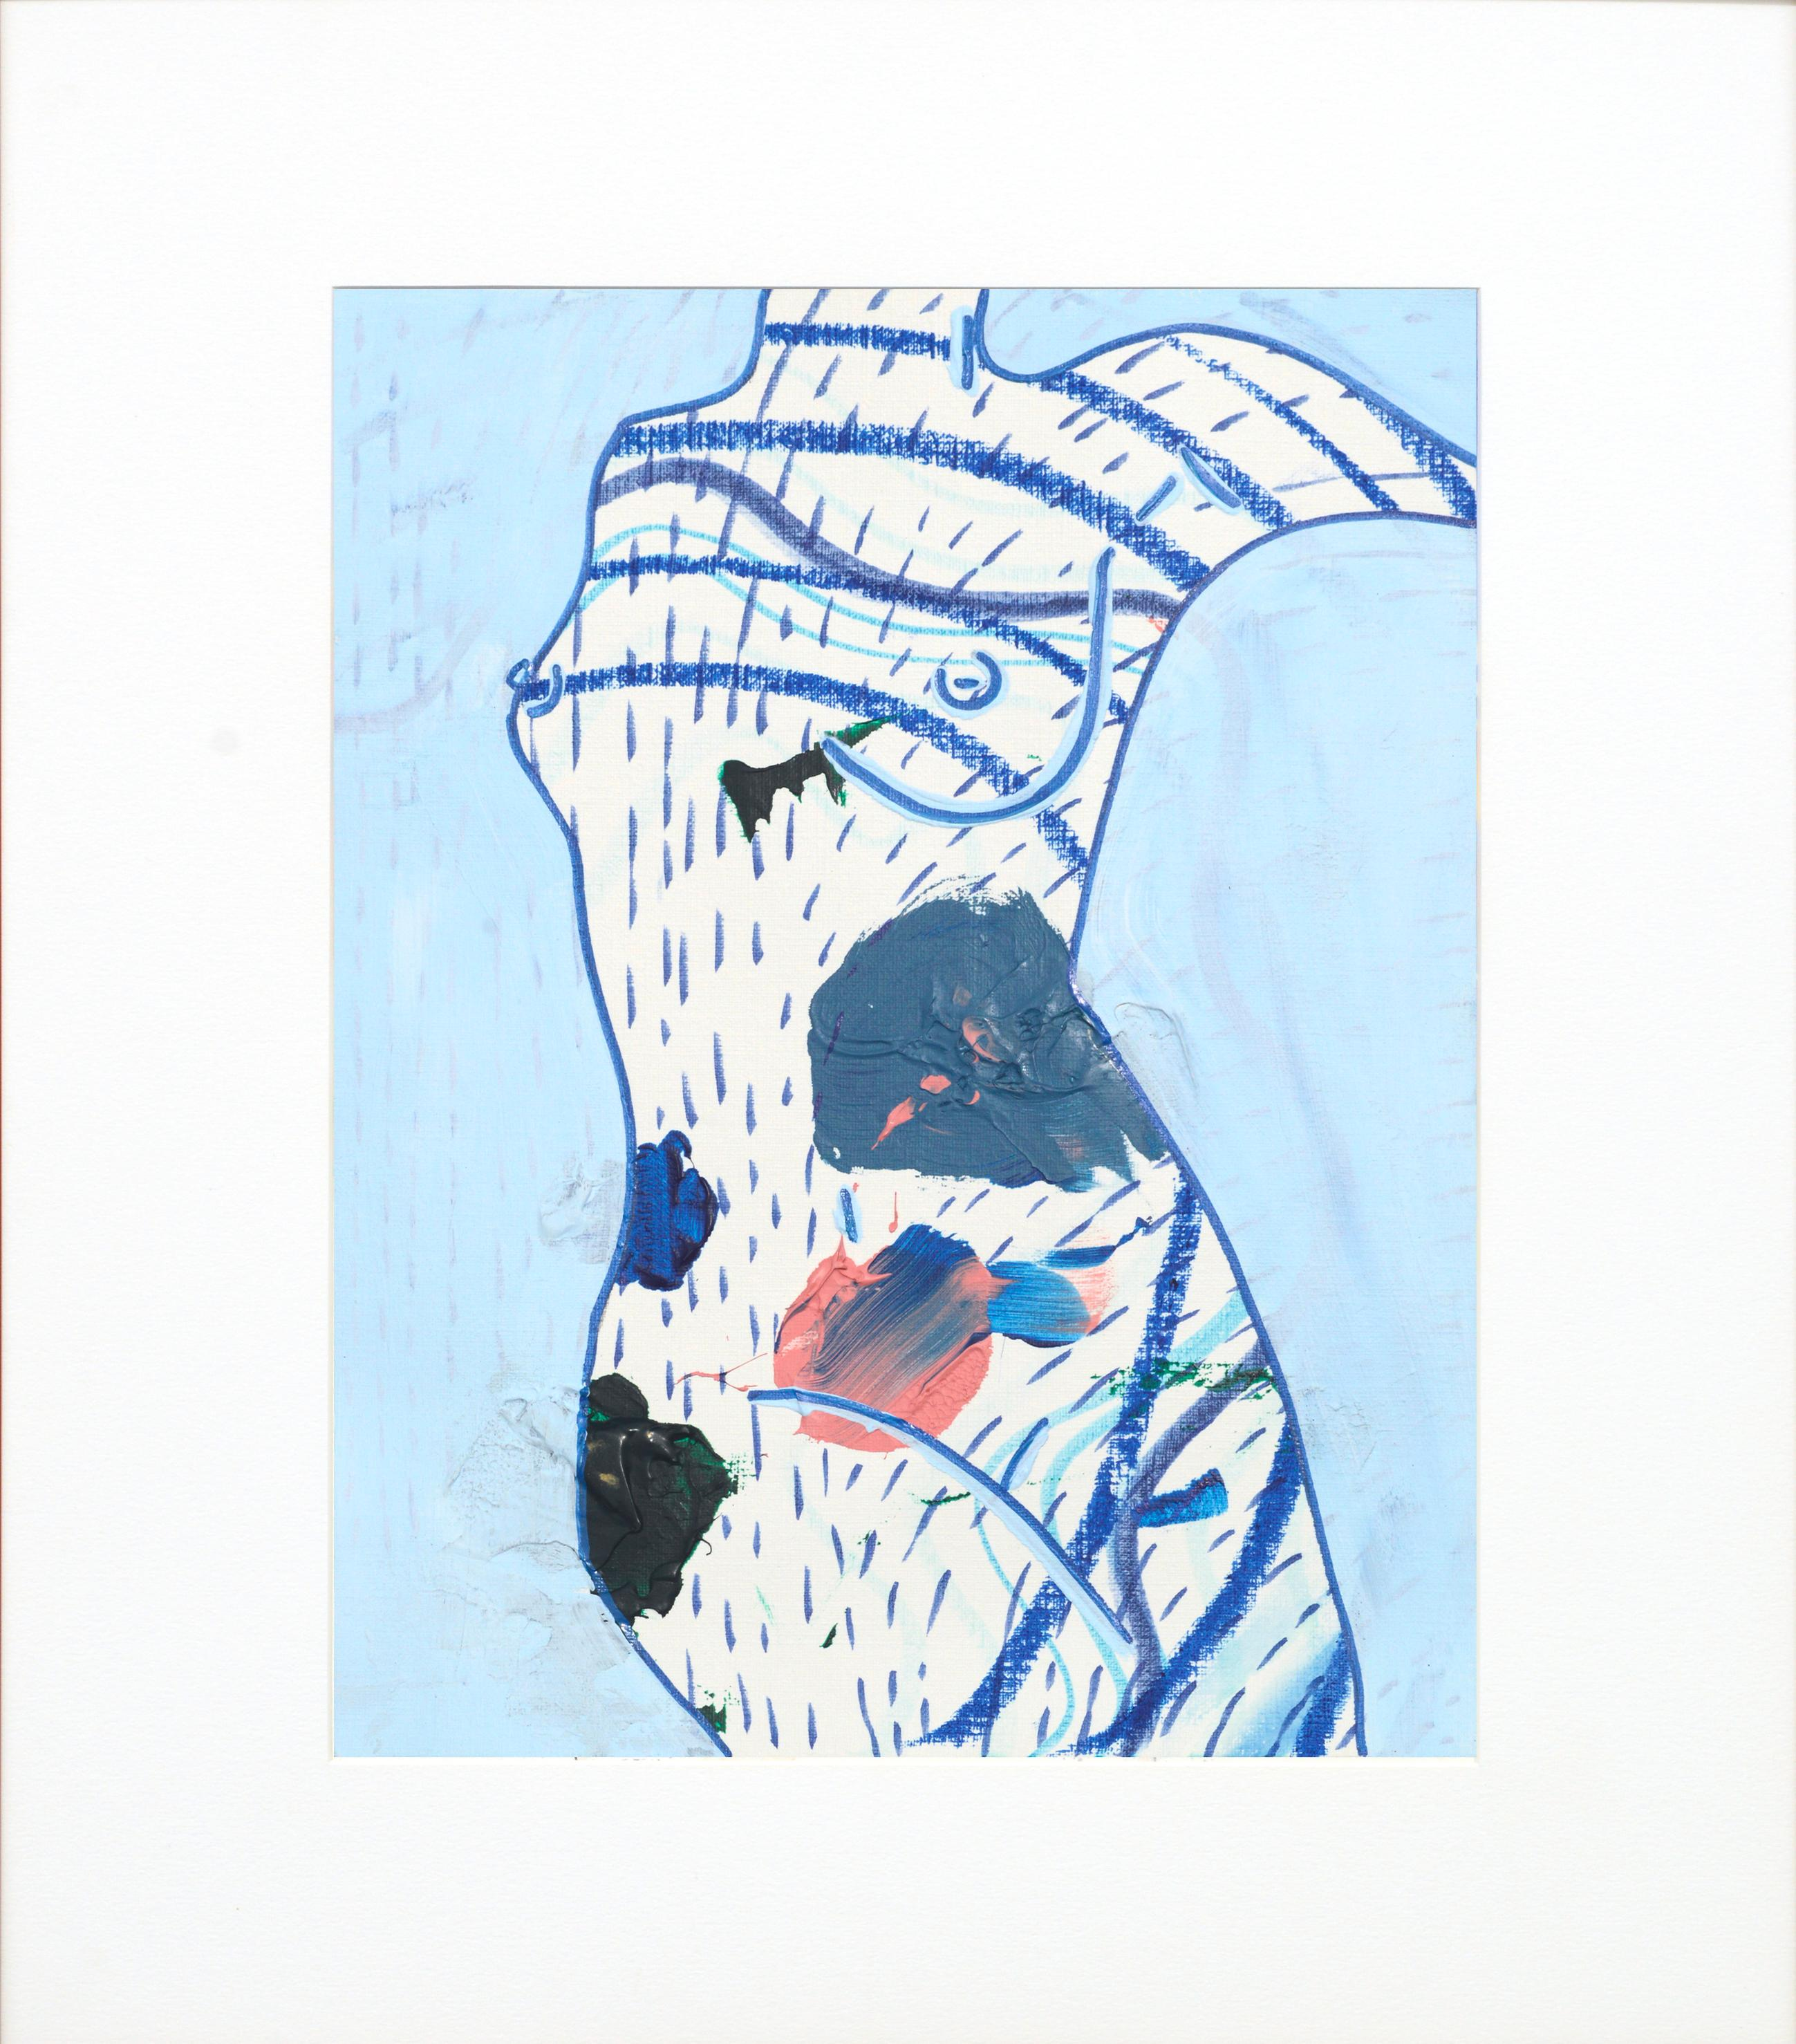 Blue Patterned Abstract Nude Figure